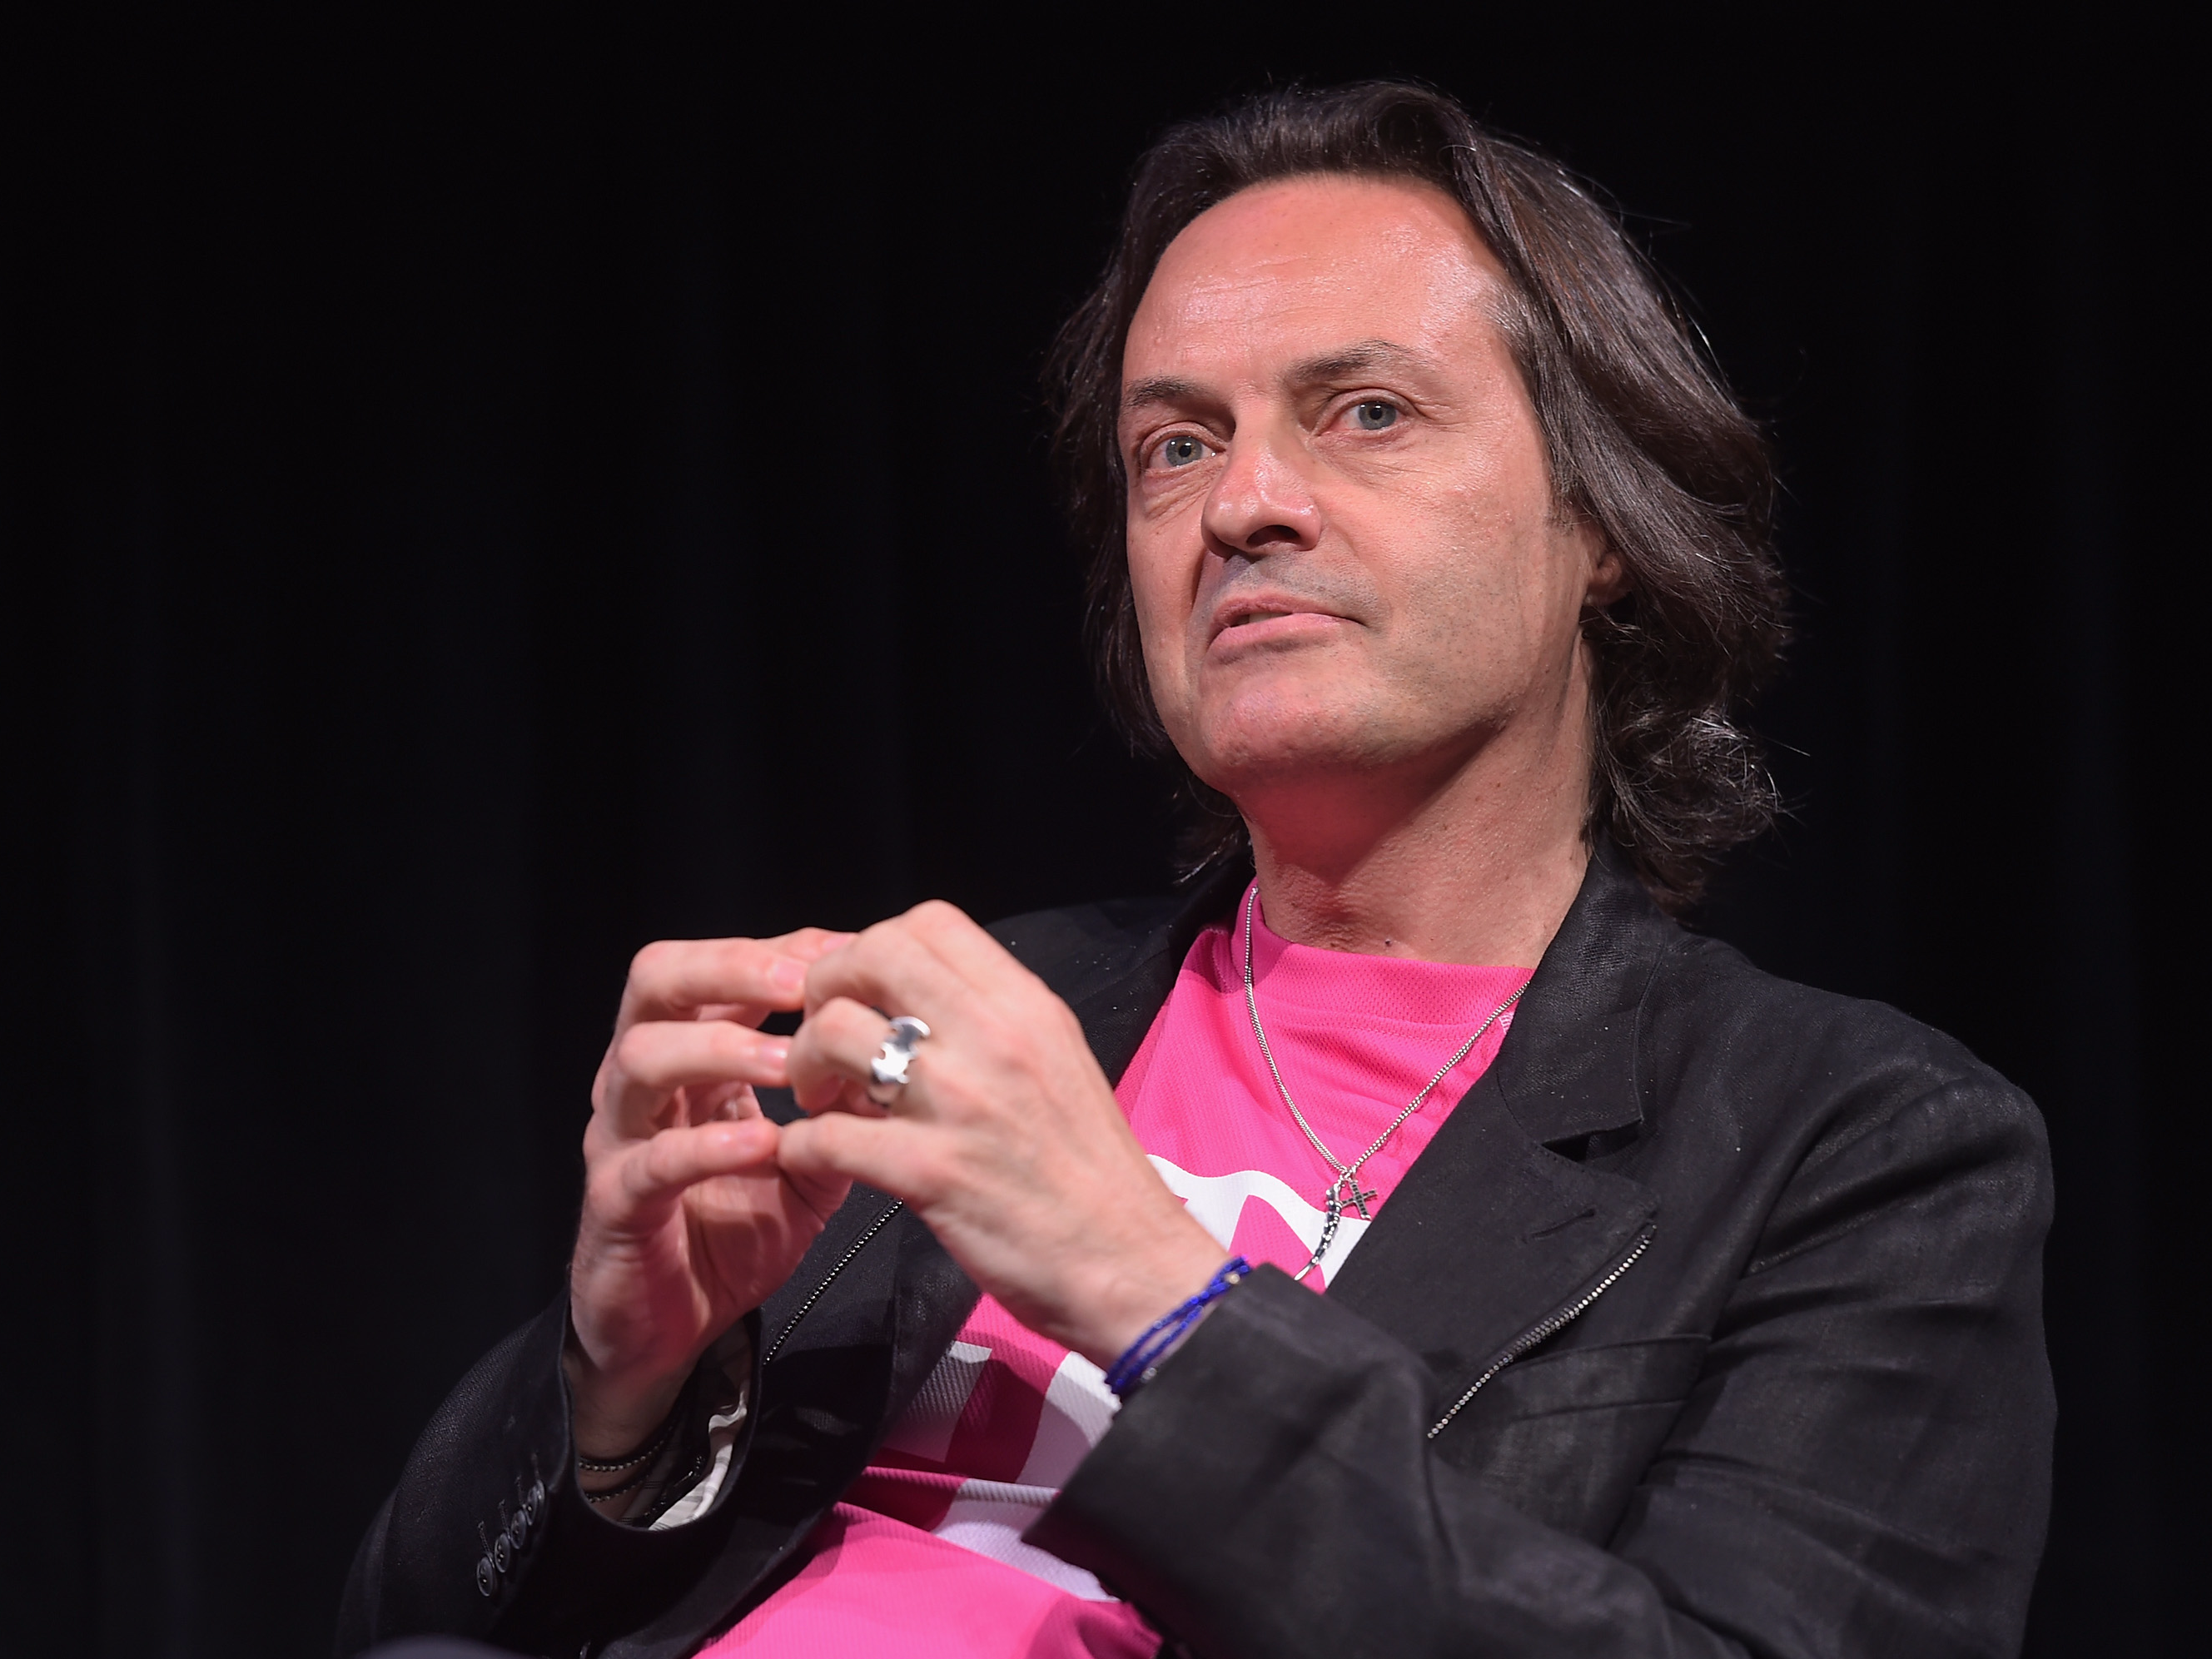 T-Mobile's 'One' mobile plan is not the simple, unified plan